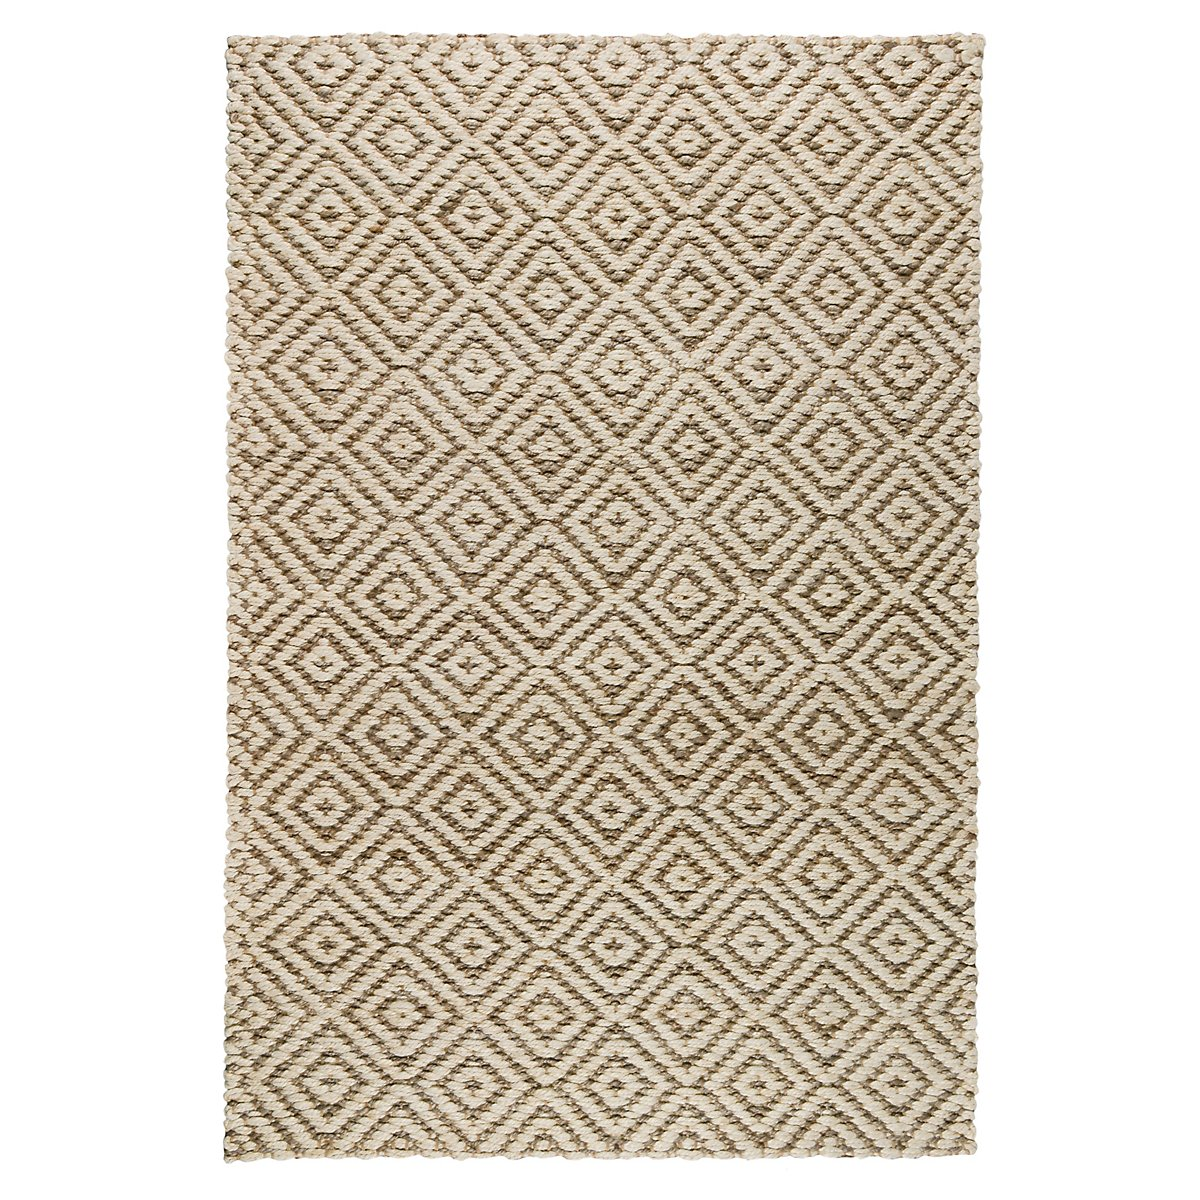 Artemis Light Taupe 5X8 Area Rug